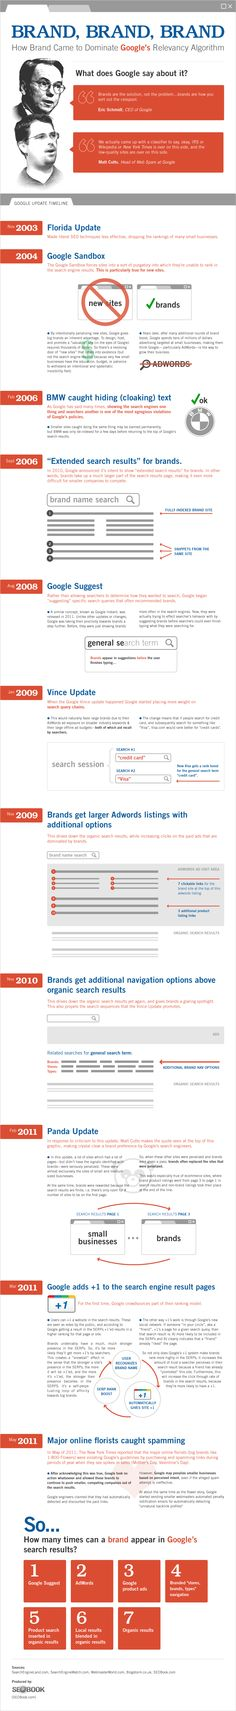 Google Brand Promotion: Why Brands Rank #1 in Google